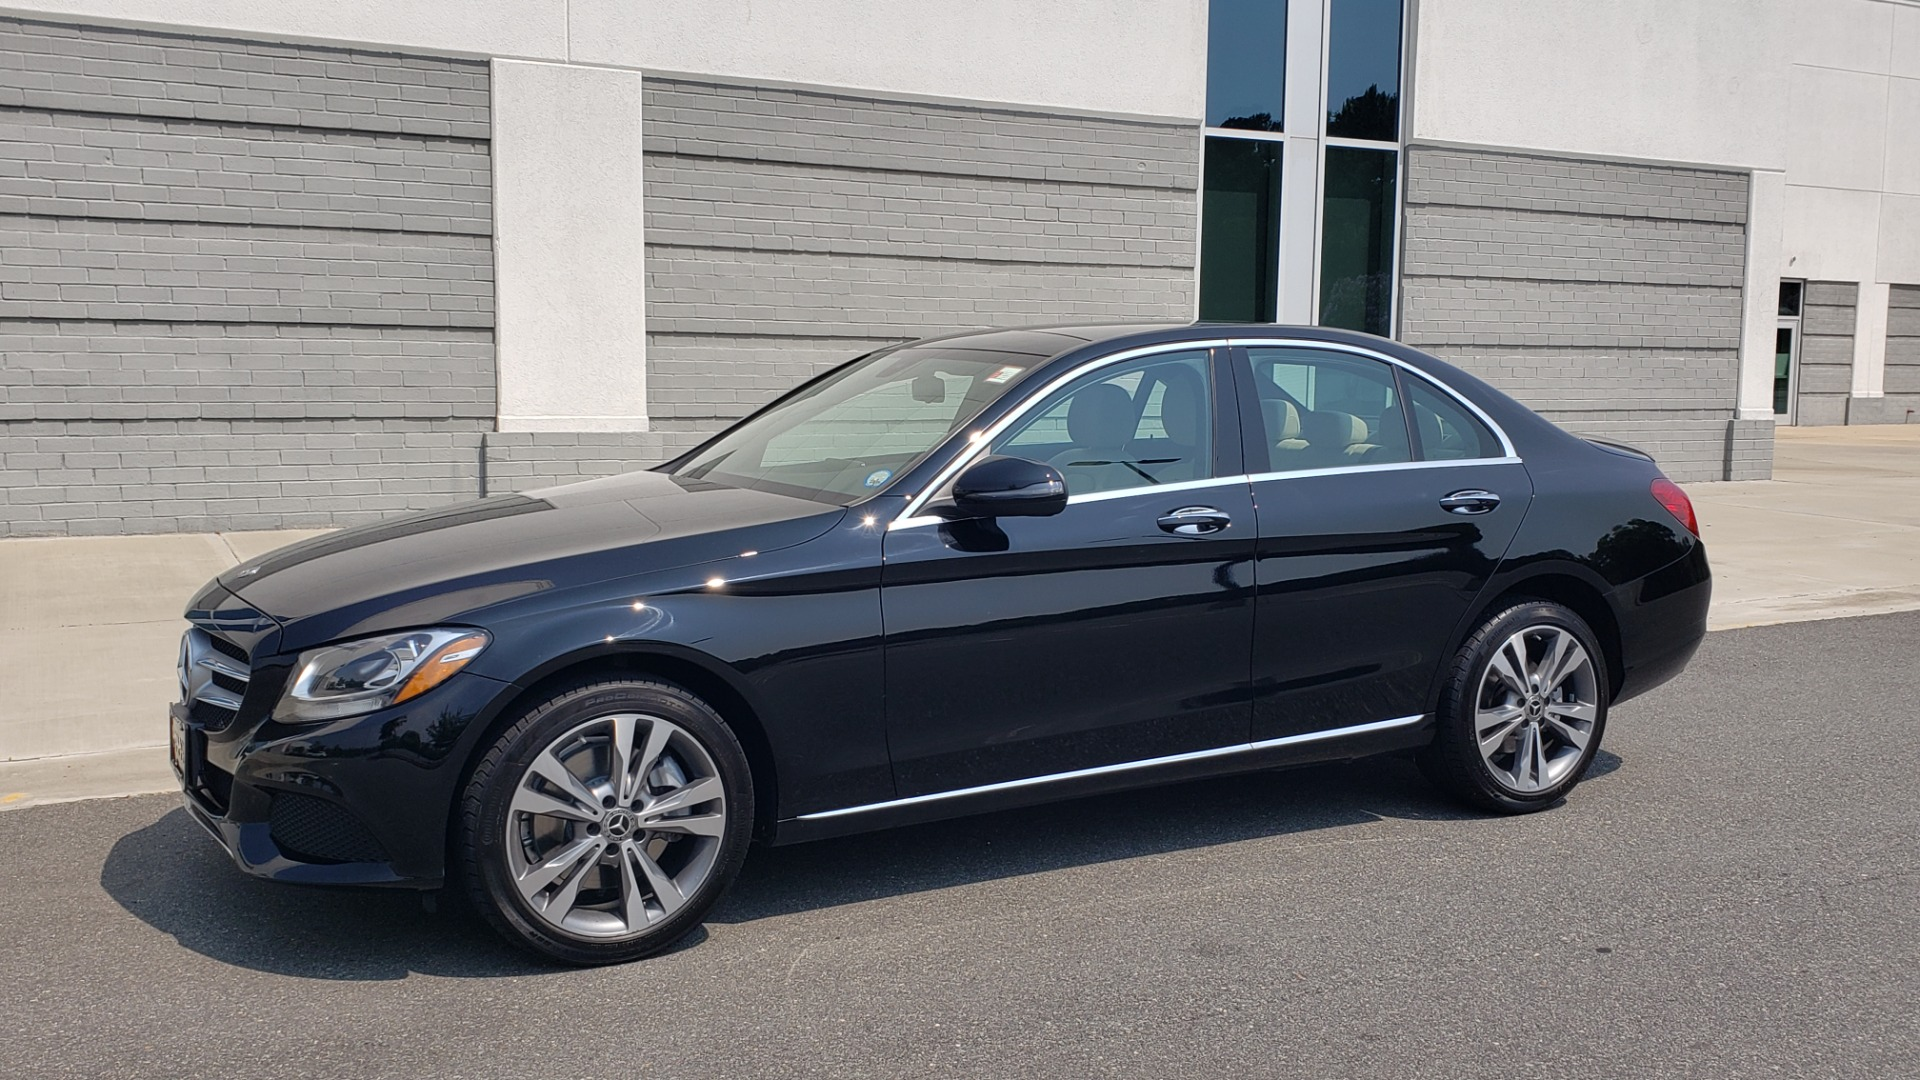 Used 2018 Mercedes-Benz C-CLASS C 300 4MATIC / PREMIUM / MULTIMEDIA / NAV / PANO-ROOF / BURMESTER for sale $30,495 at Formula Imports in Charlotte NC 28227 4